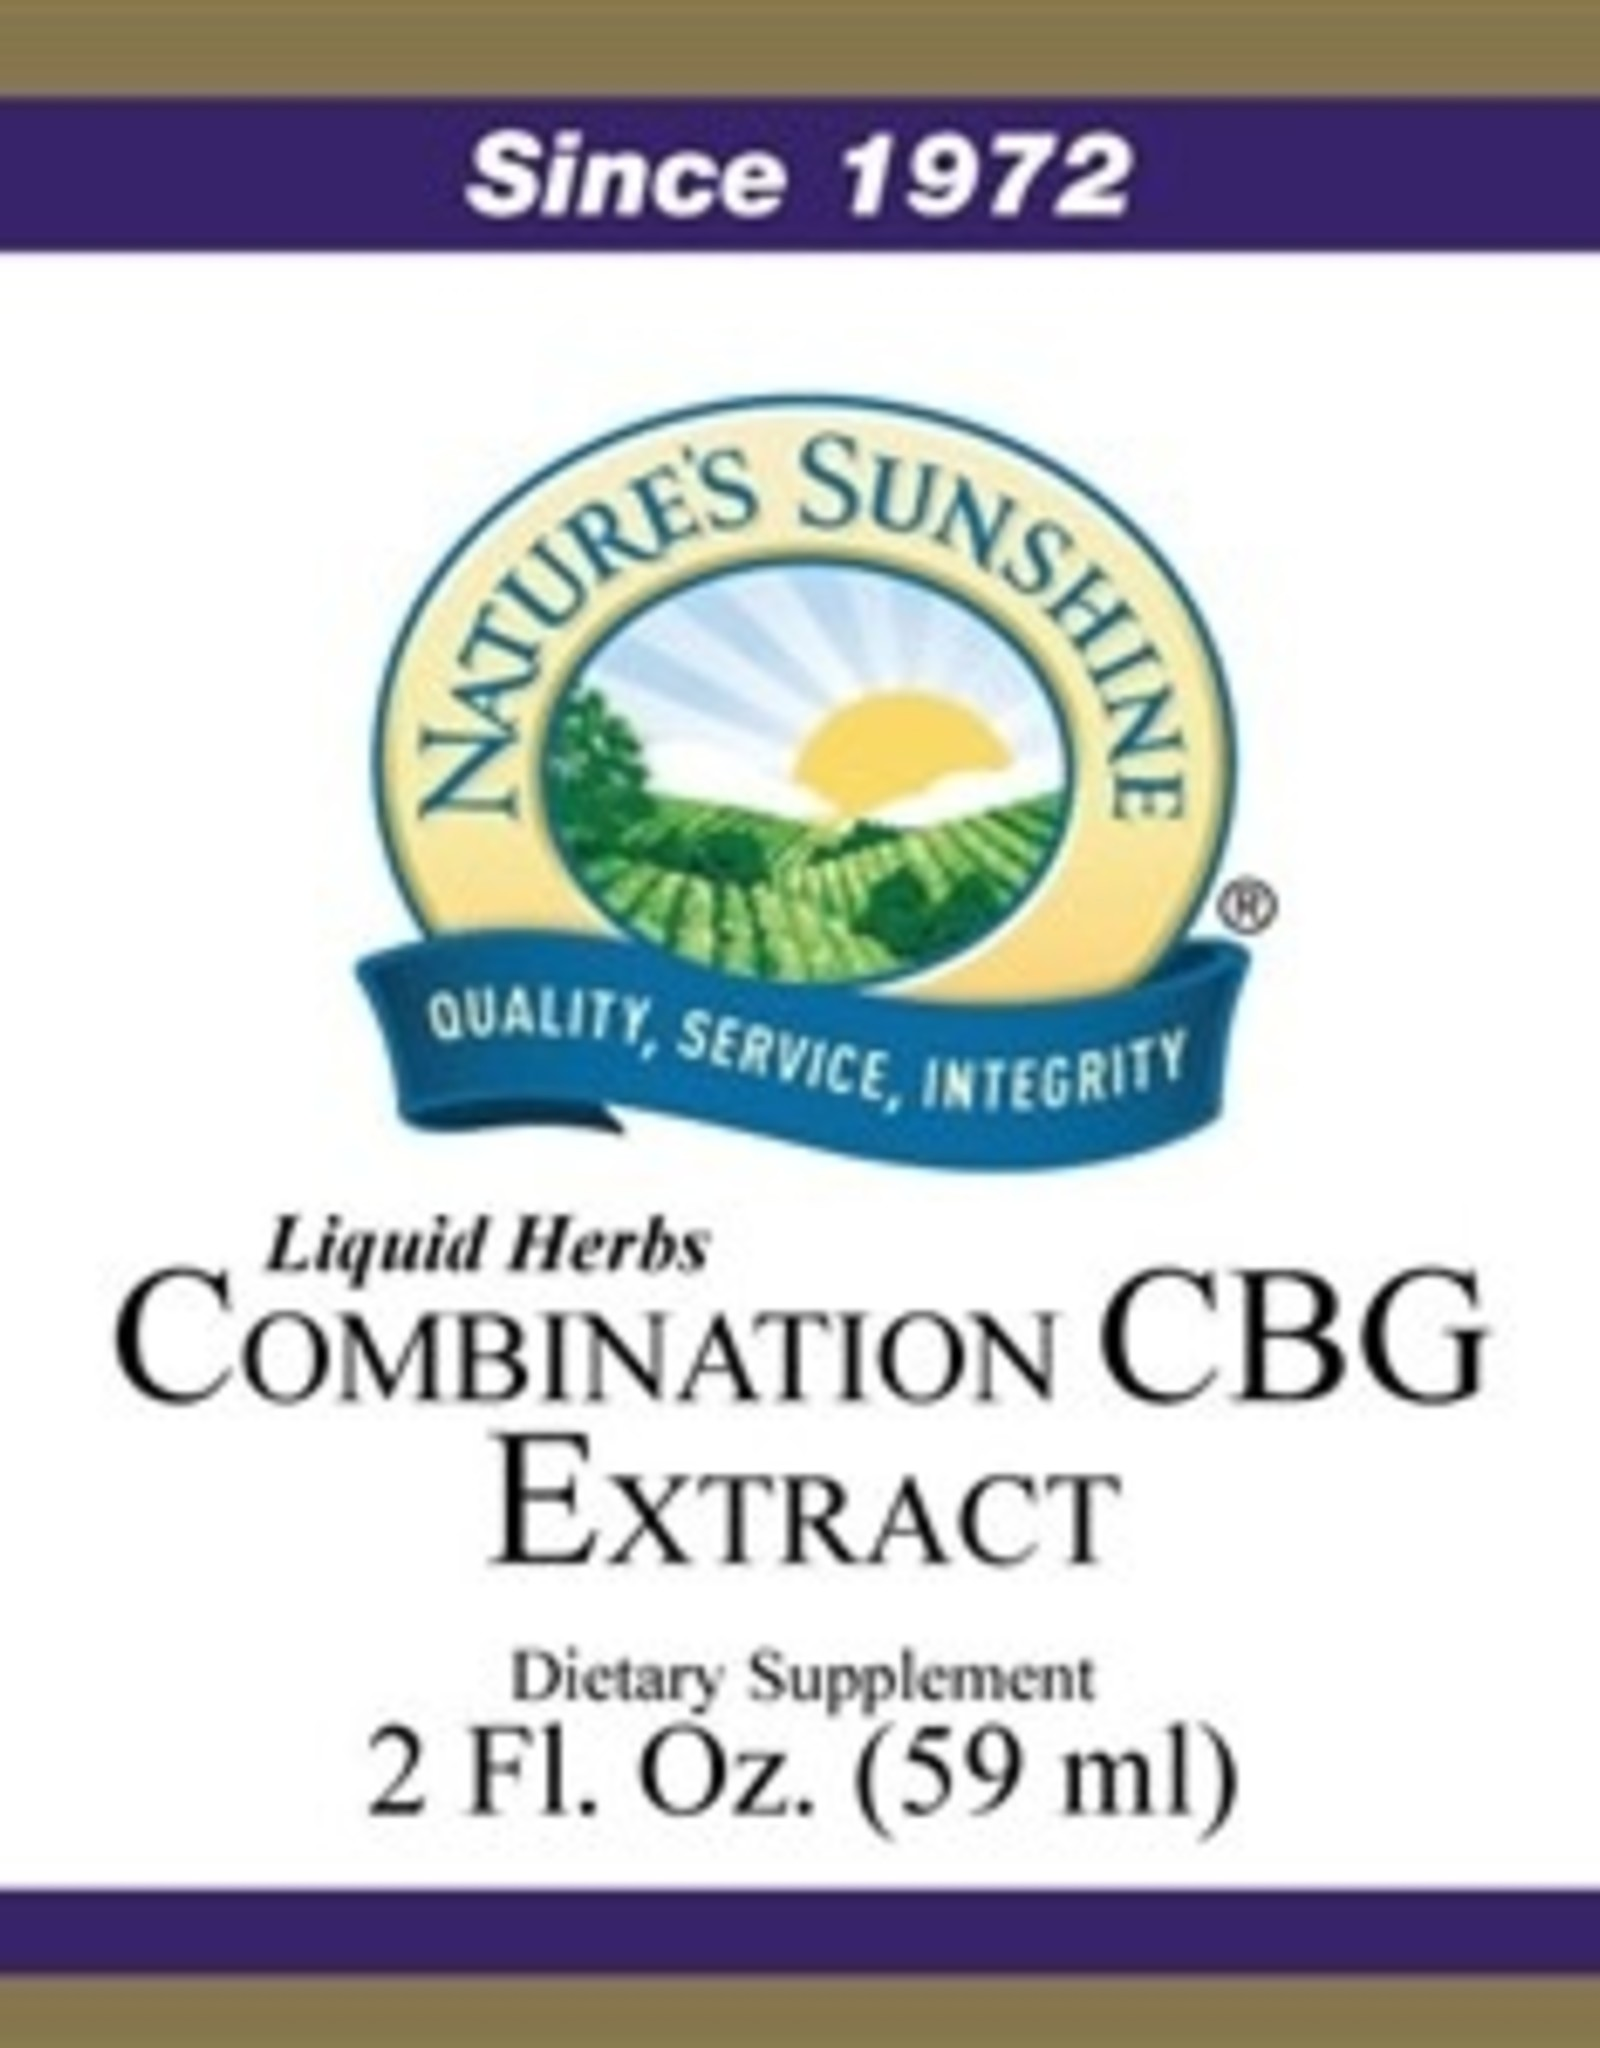 Nature's Sunshine Combination CBG Extract (2 fl. oz.)*